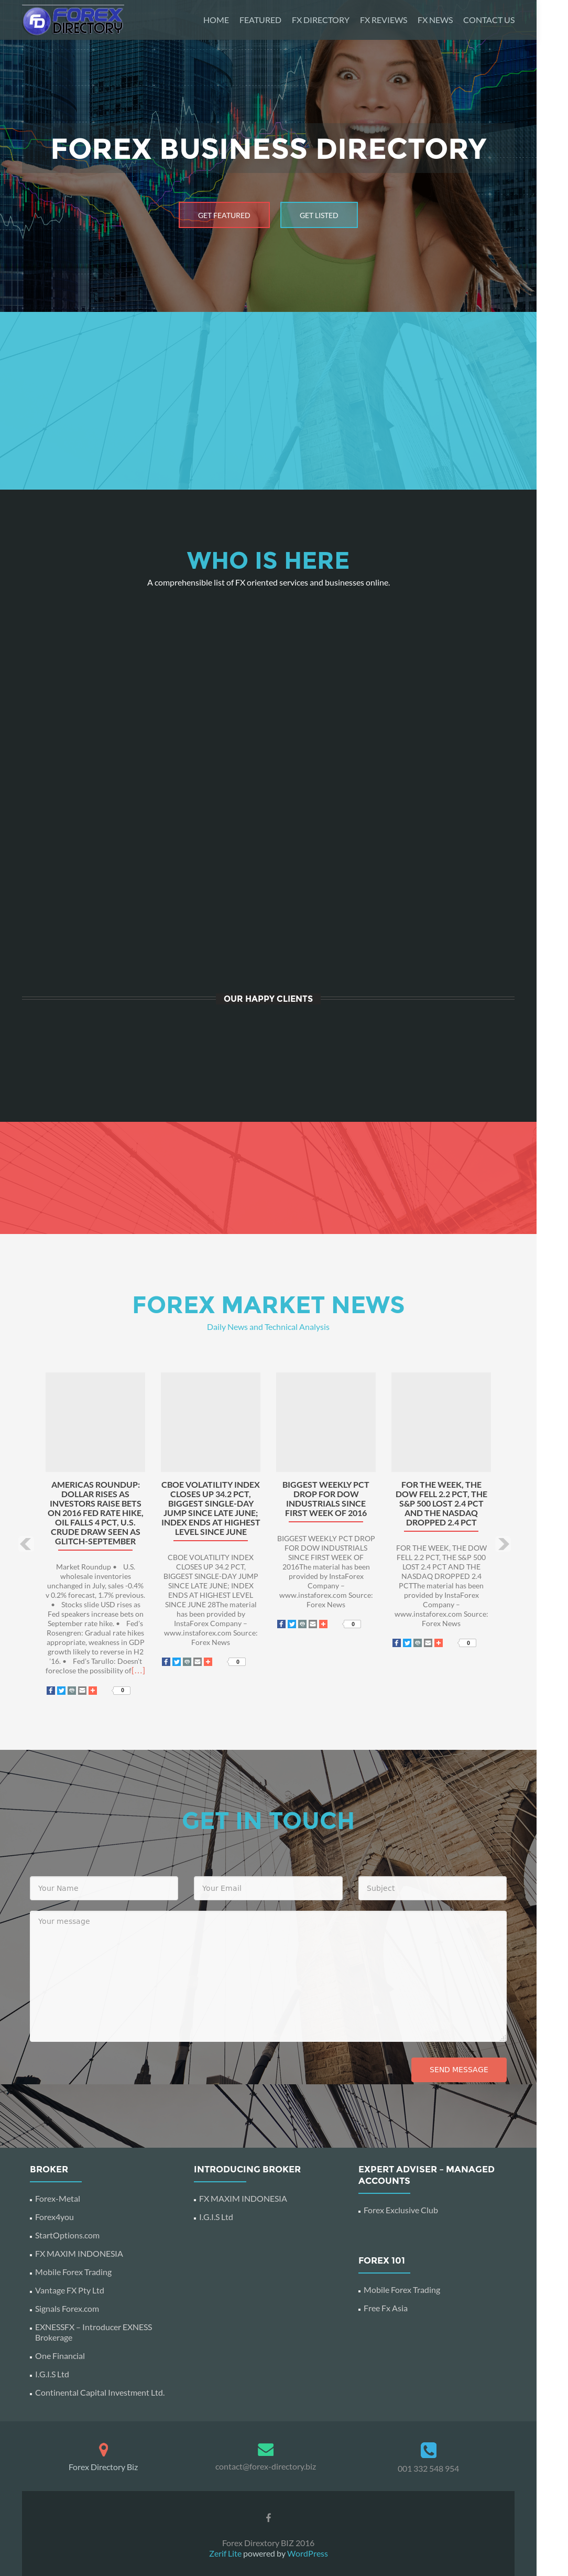 Forex Directory Competitors, Revenue and Employees - Owler